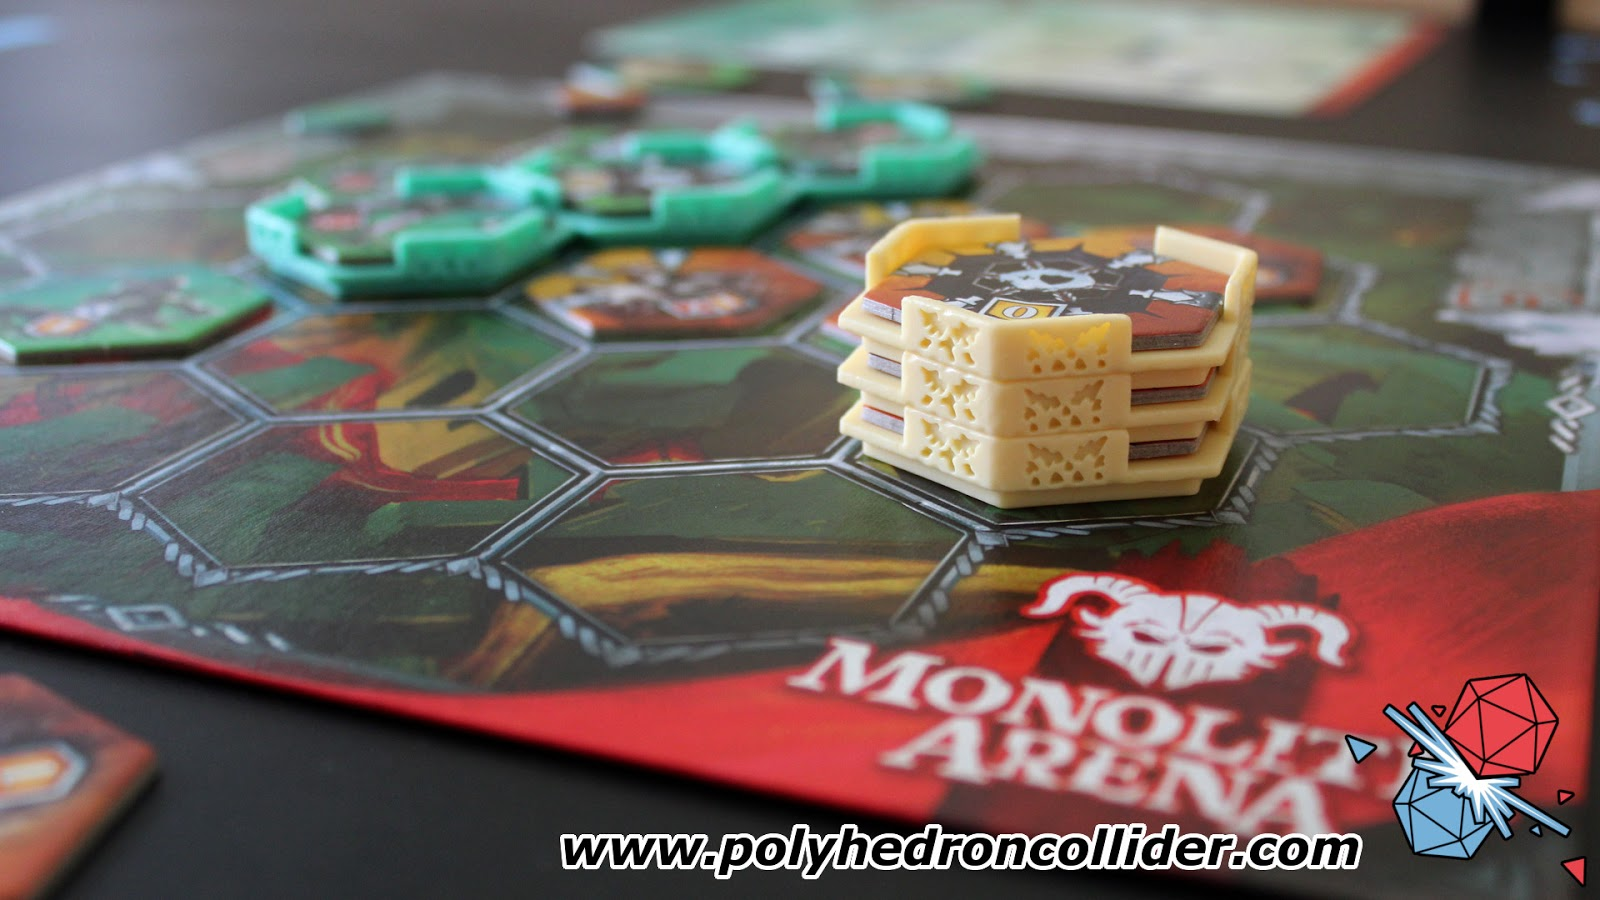 Monolith arena Portal Games board game review